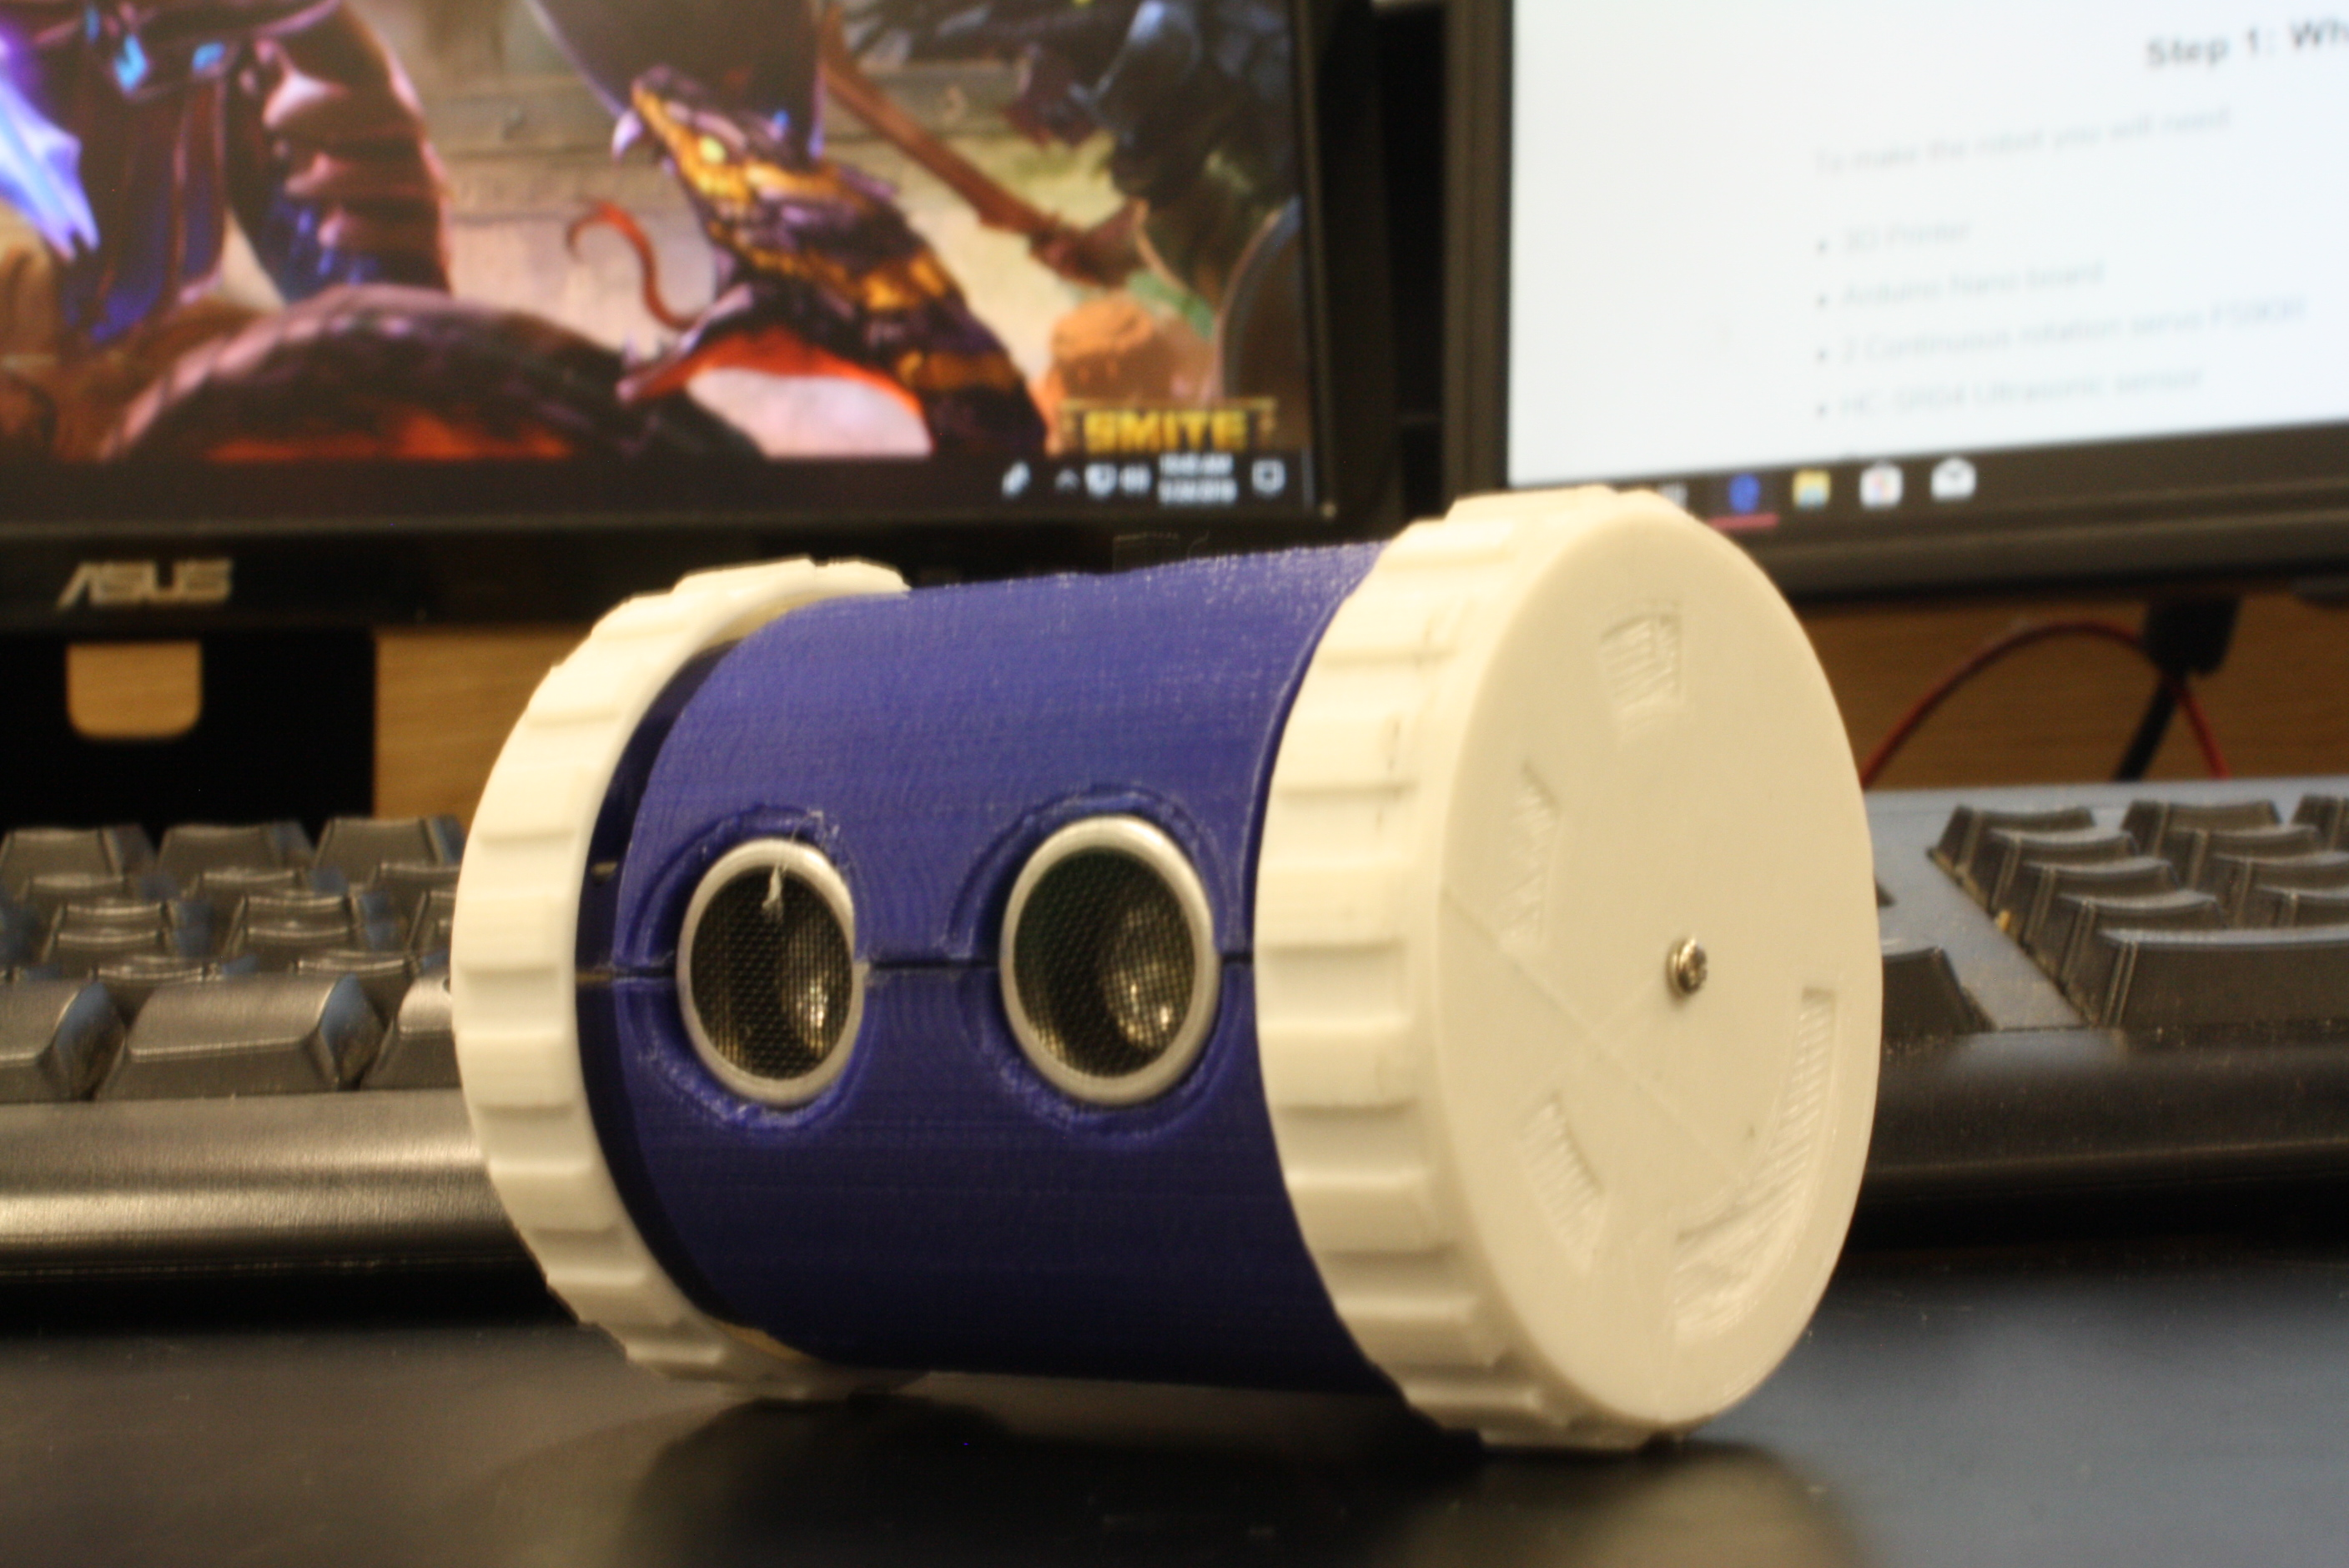 Picture of Object Avoiding Arduino Robot